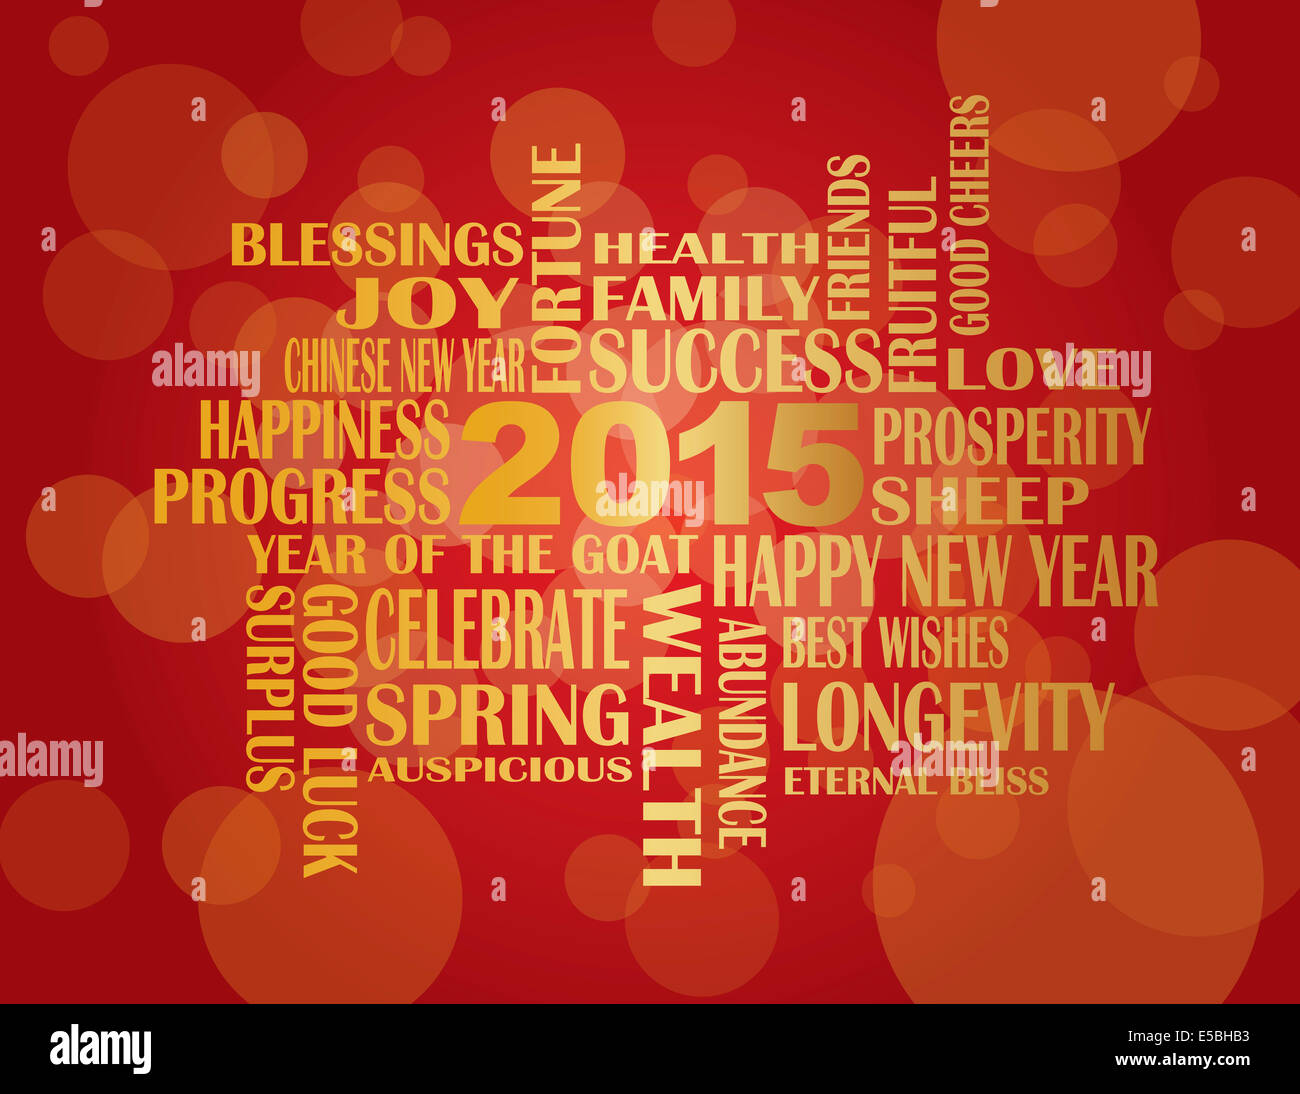 2015 chinese lunar new year english greetings text wishing health good fortune prosperity happiness in the year of the goat on r